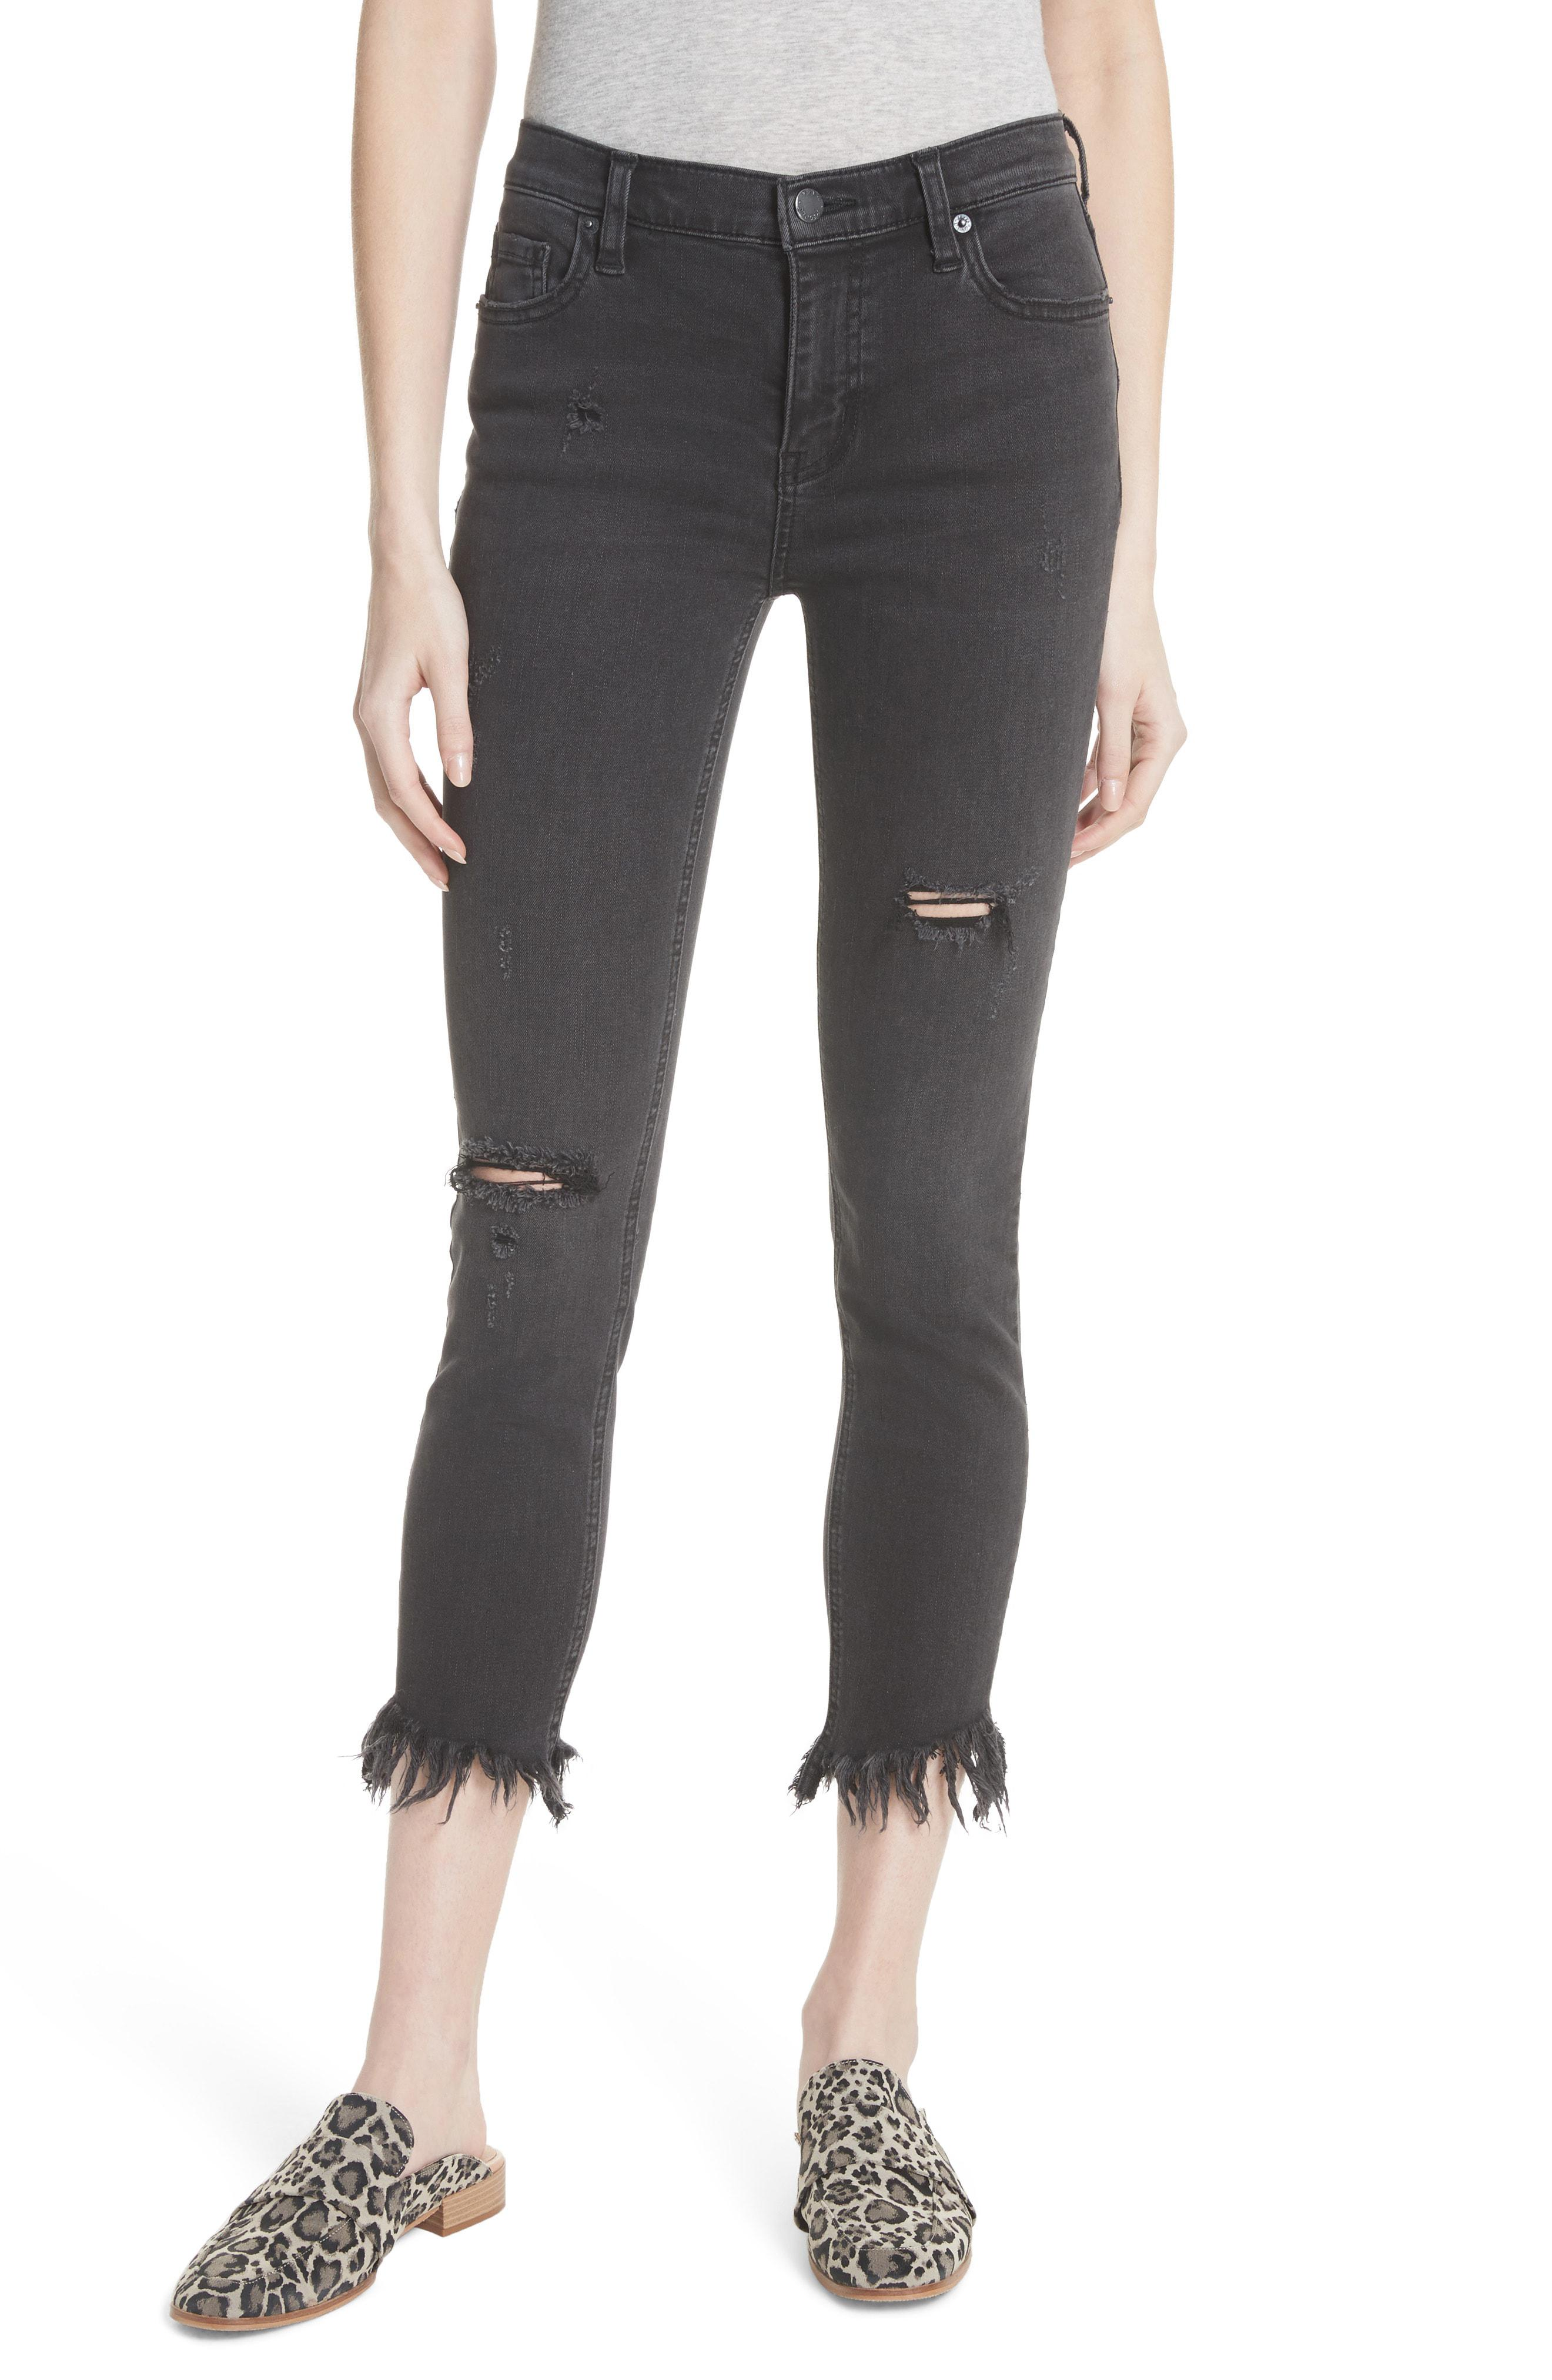 78536b93fbe Free People. Women s Black We The Free By Great Heights Frayed Skinny Jeans